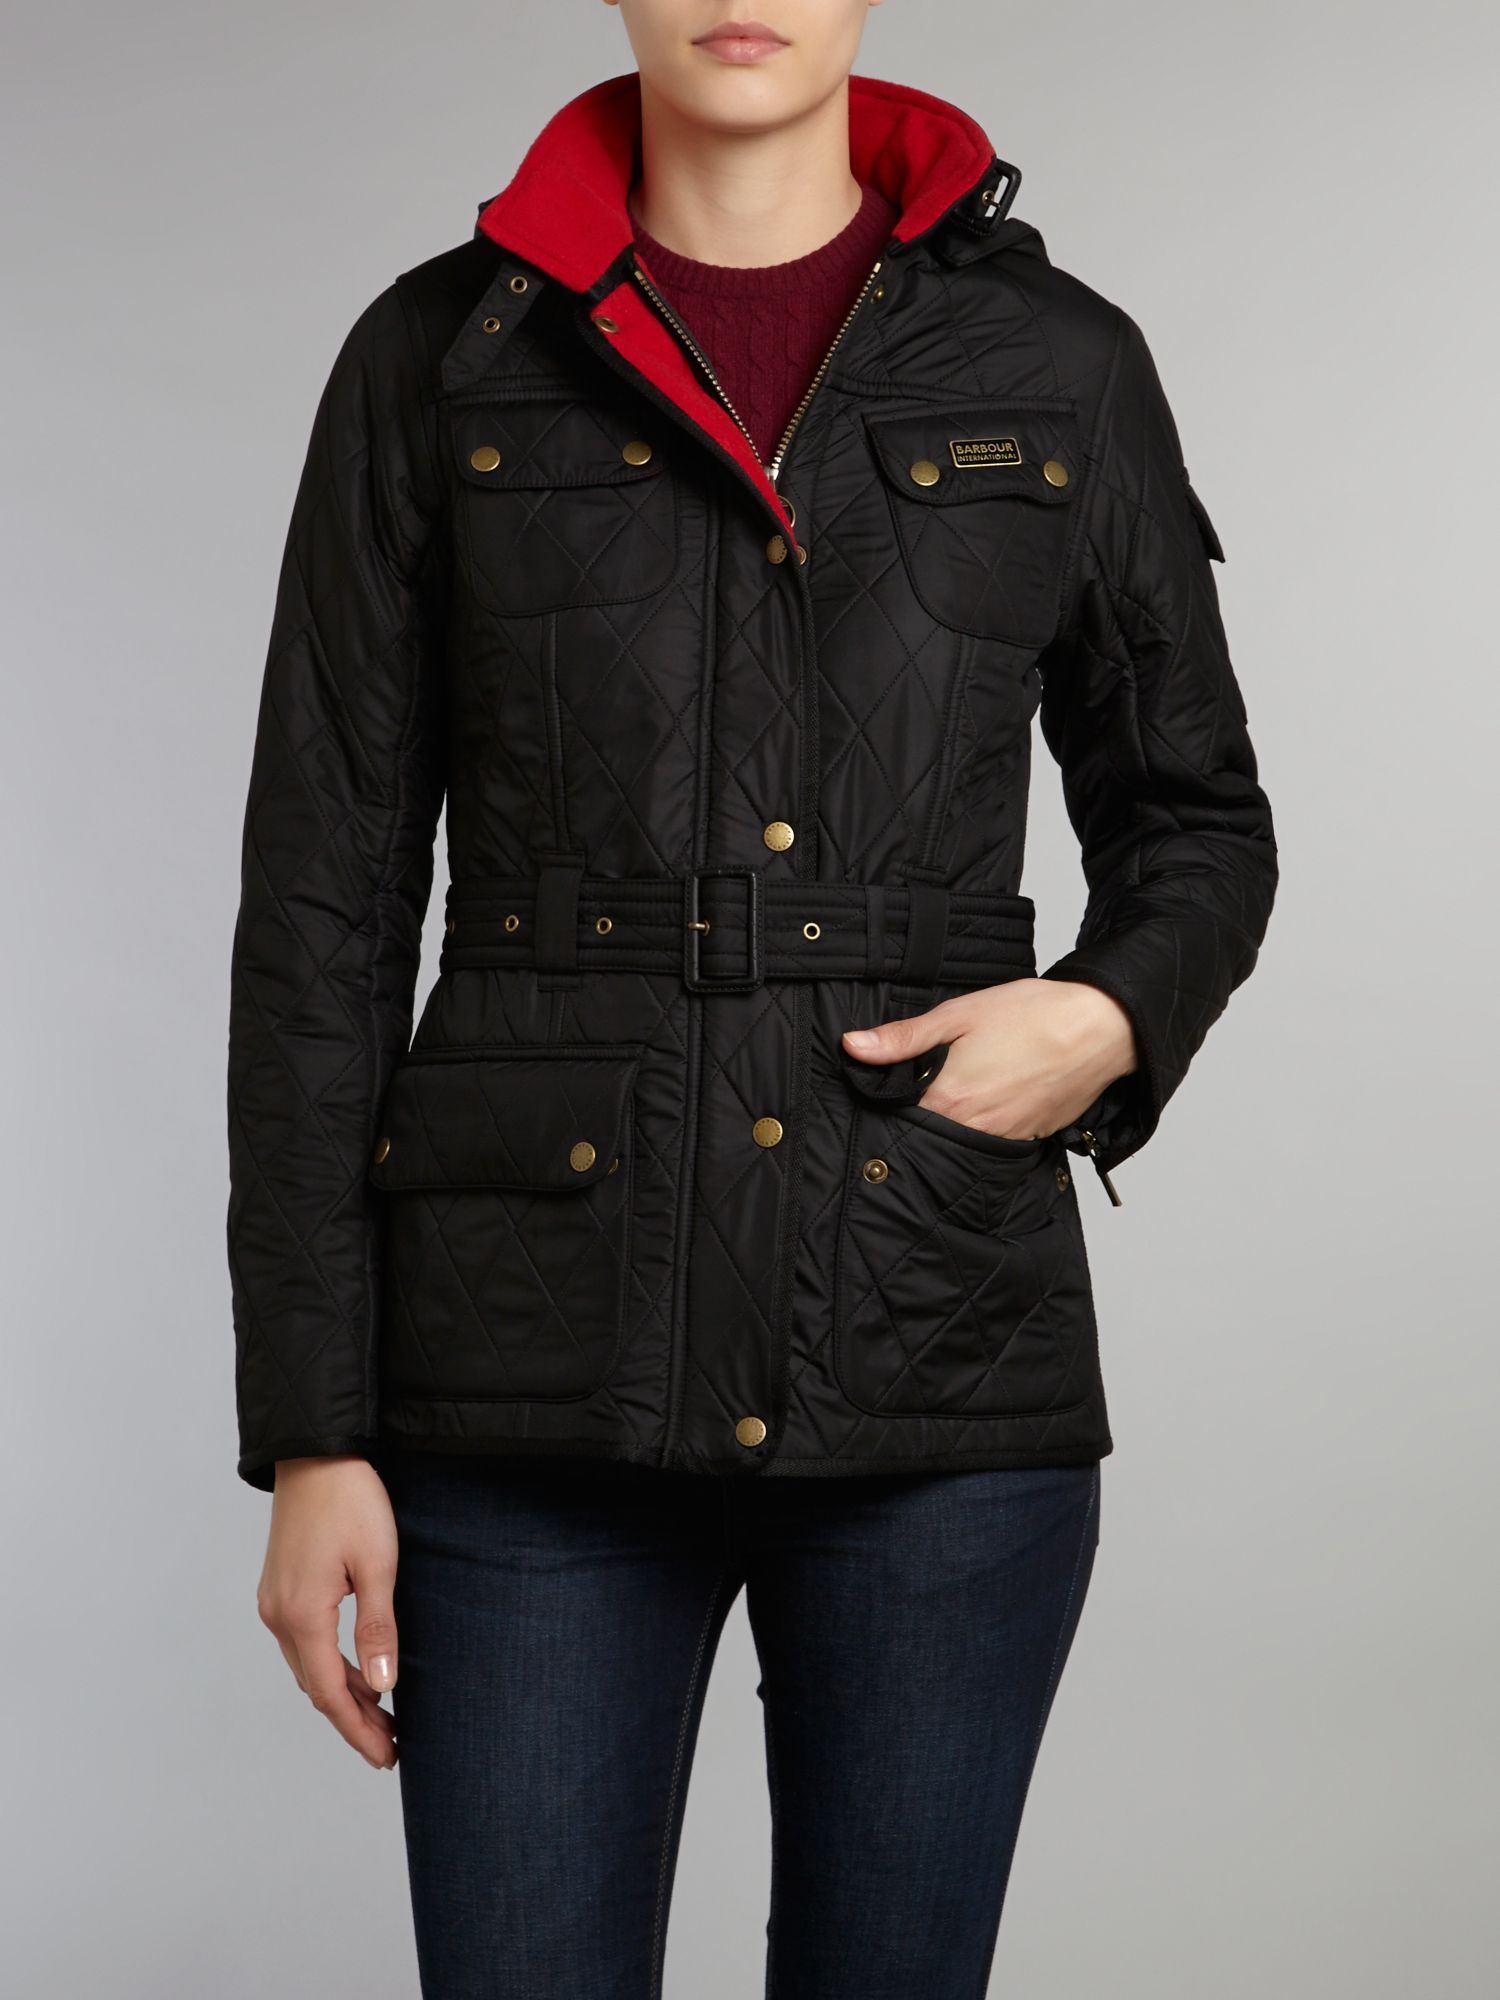 Black Friday Ladies Barbour Quilted Jackets On Sale Wax